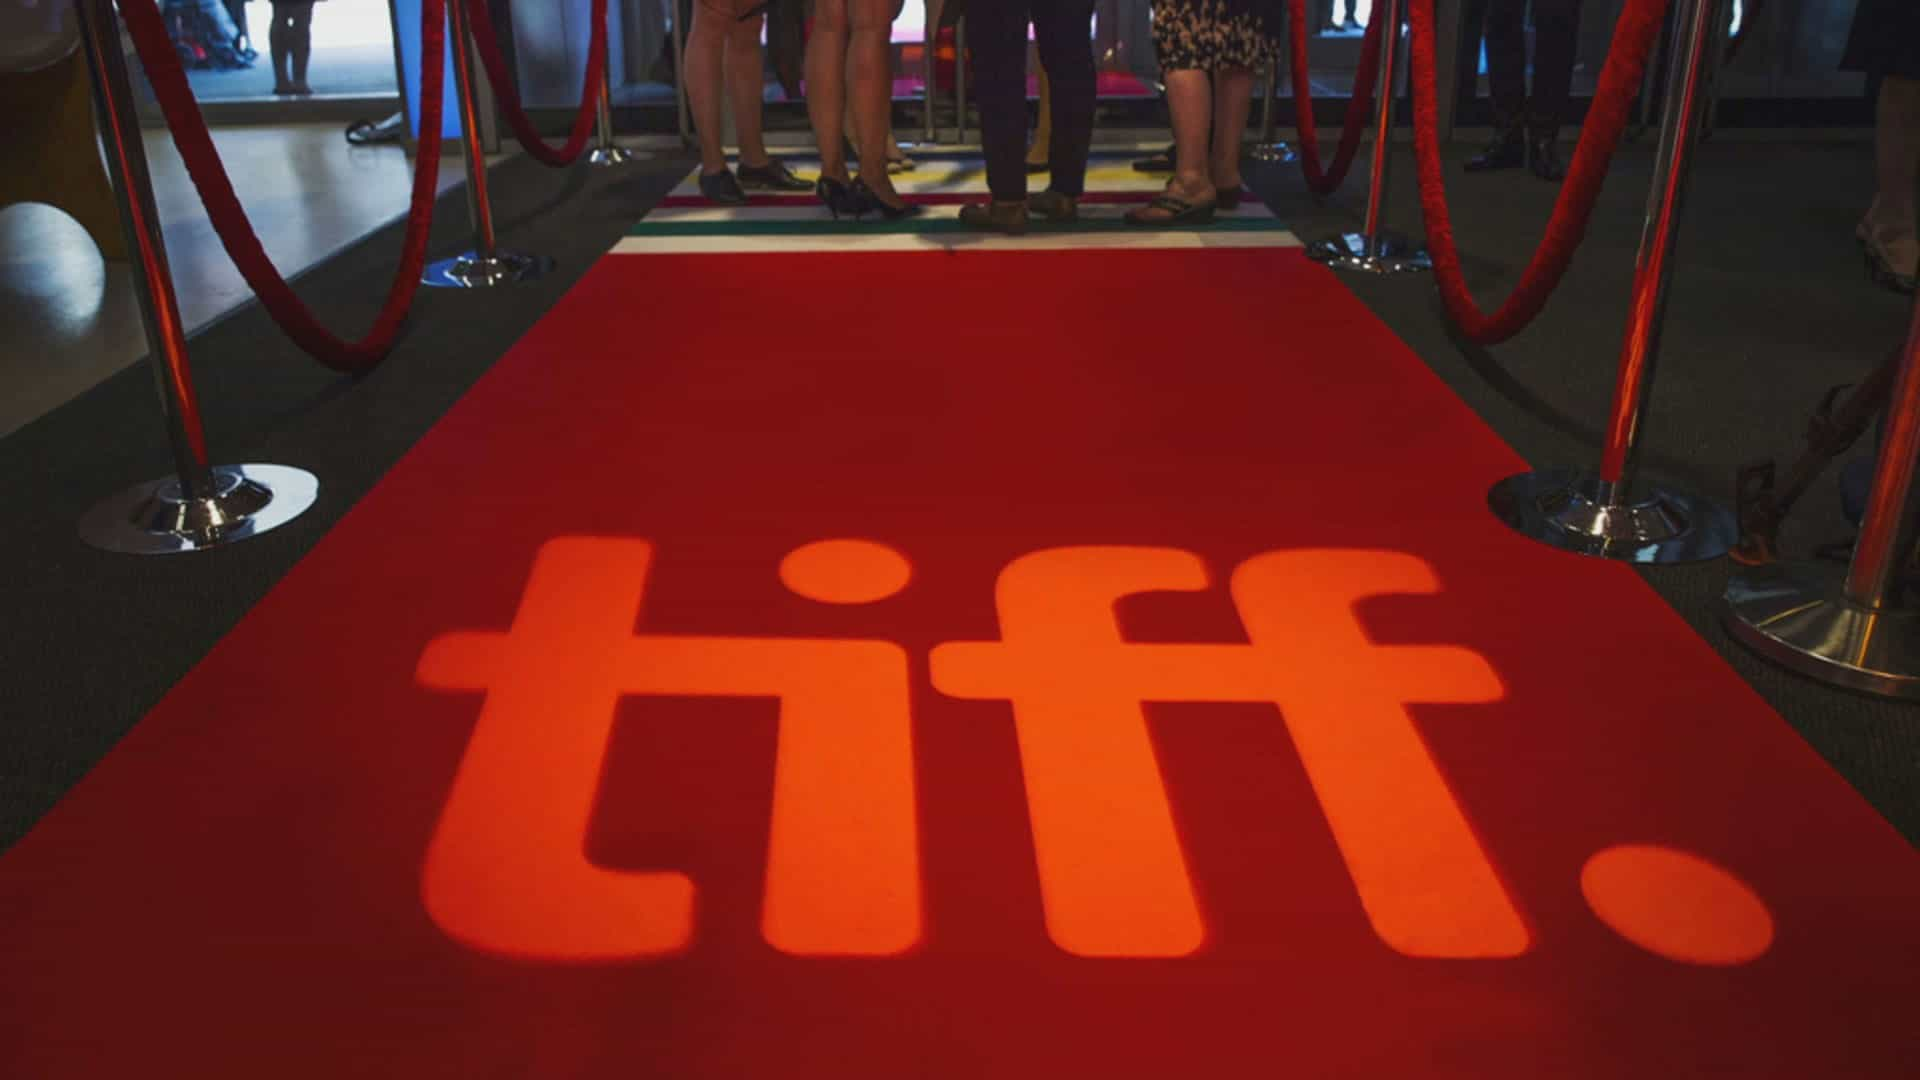 tiff-2018-red-carpets-view-the-vibe.jpg